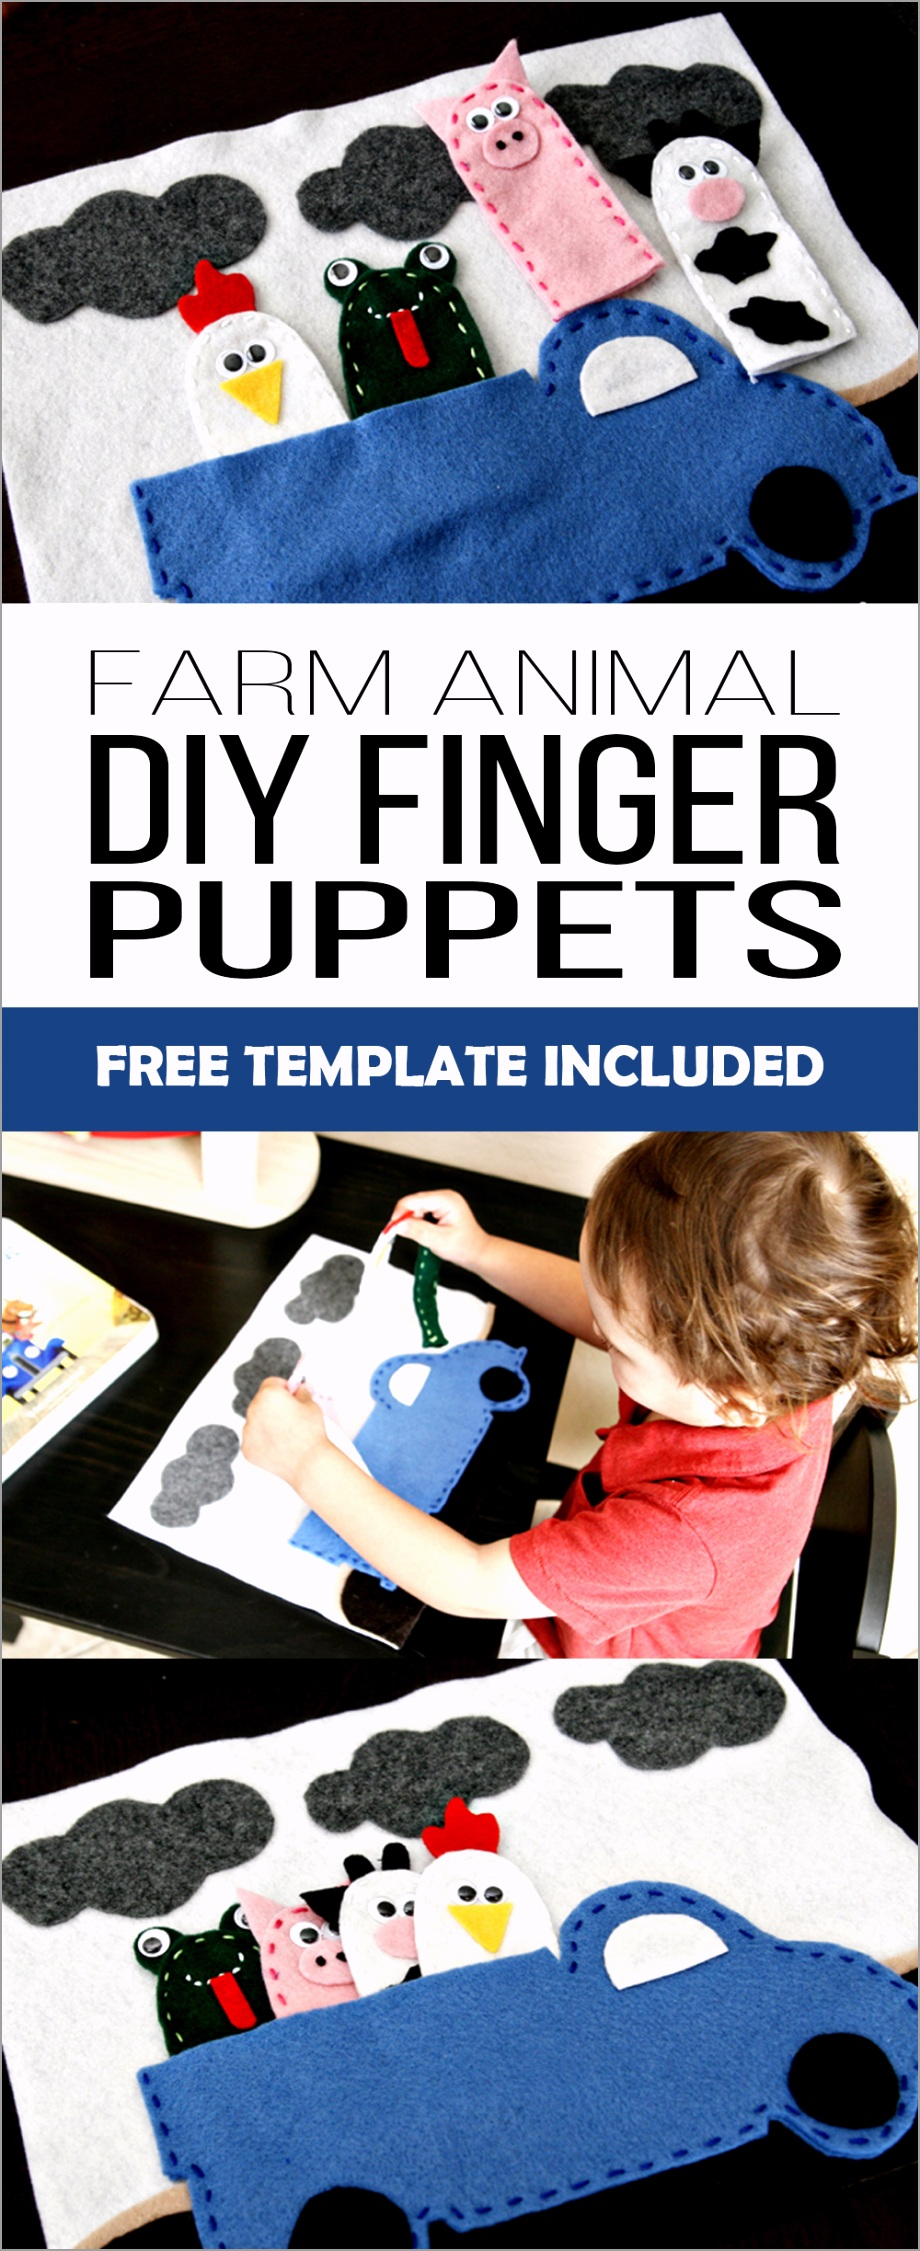 DIY Farm Animal Finger Puppets with Free Printable Template yewiu